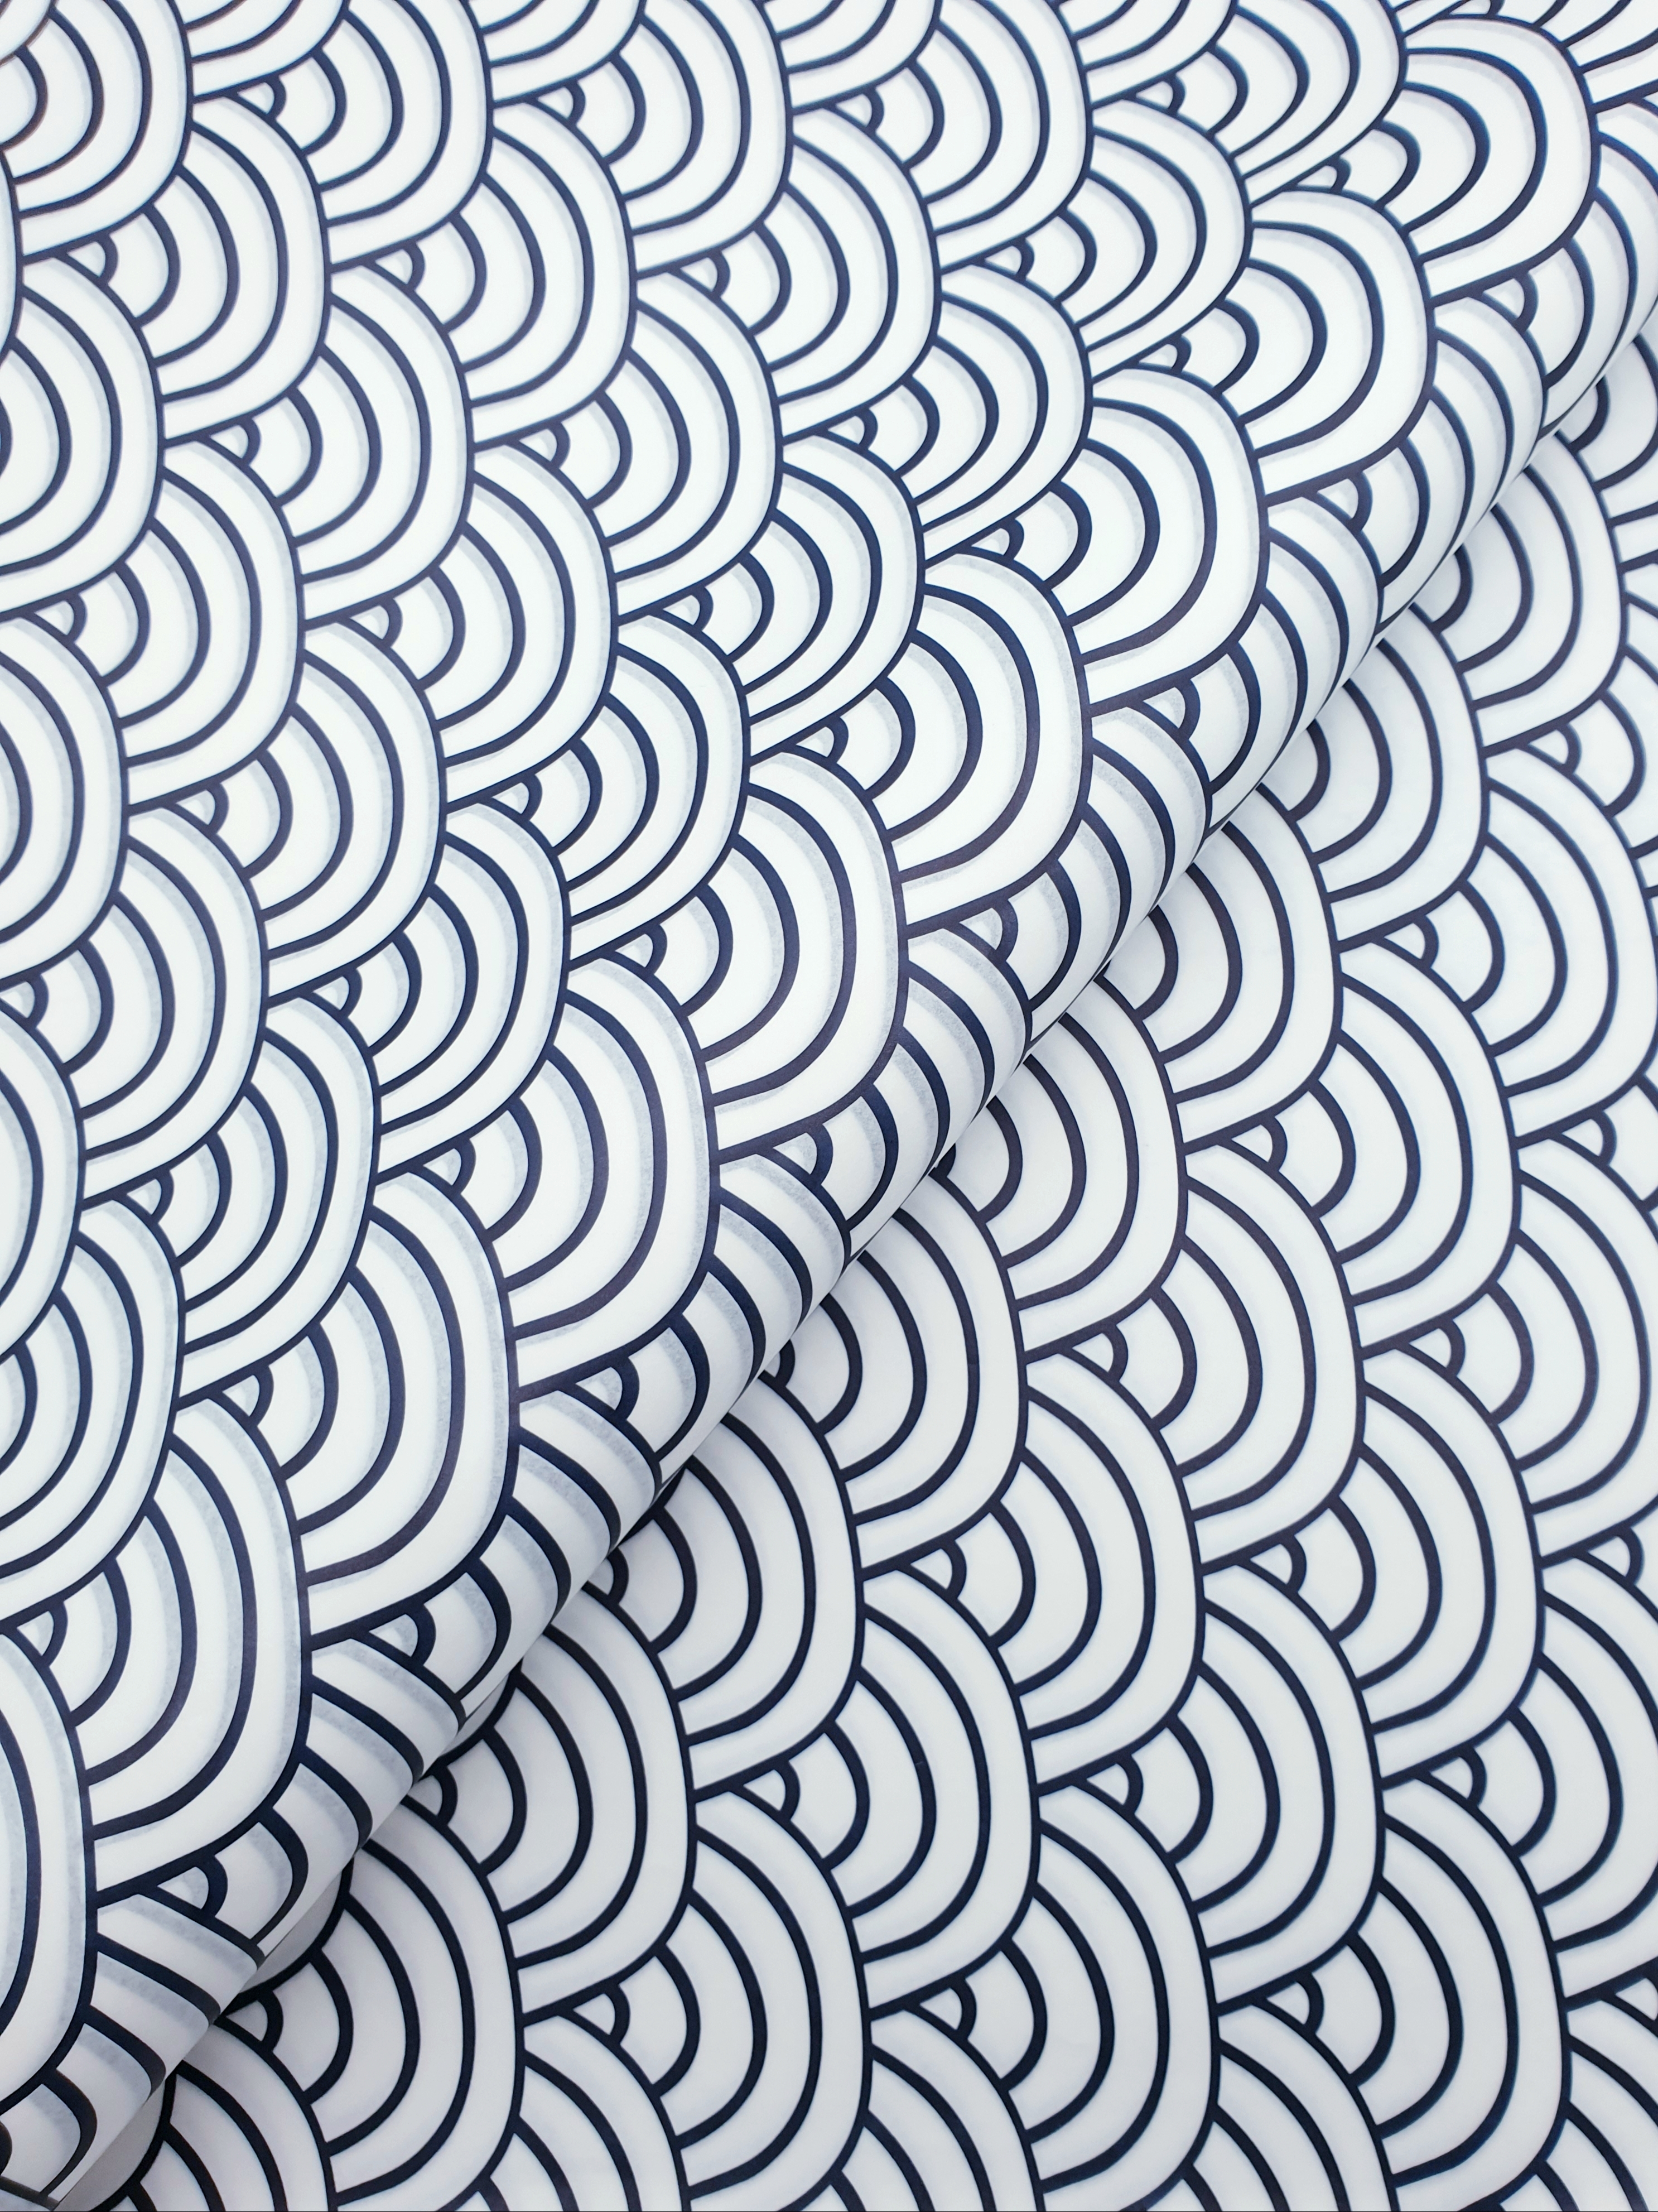 Tissue Paper -Waves - Navy On White (Qty 25) TPWAVE